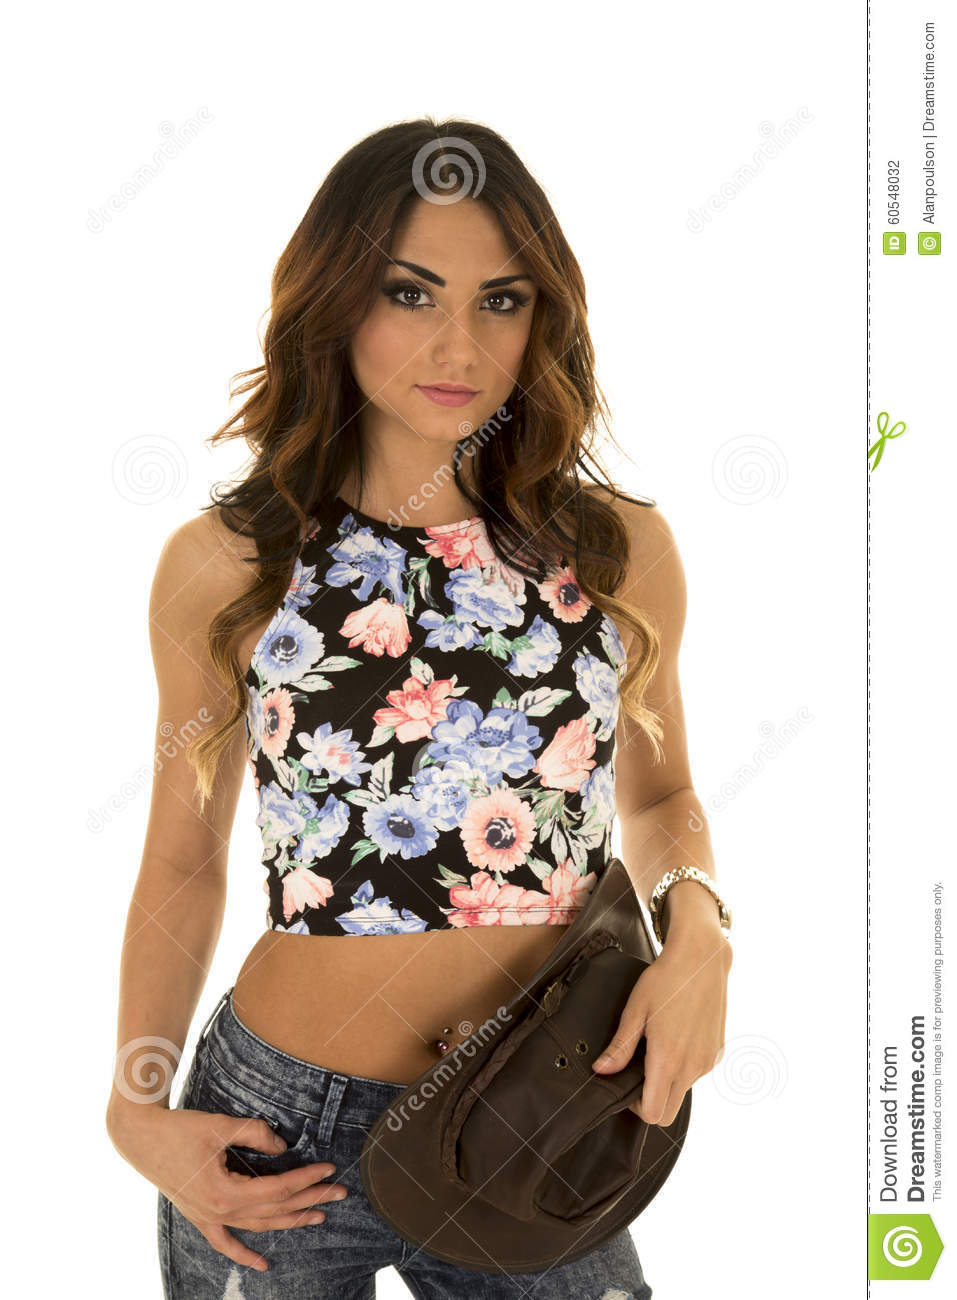 011fa3fbf20 Woman In Floral Shirt Cowgirl Hat By Waist Stock Photo - Image of ...